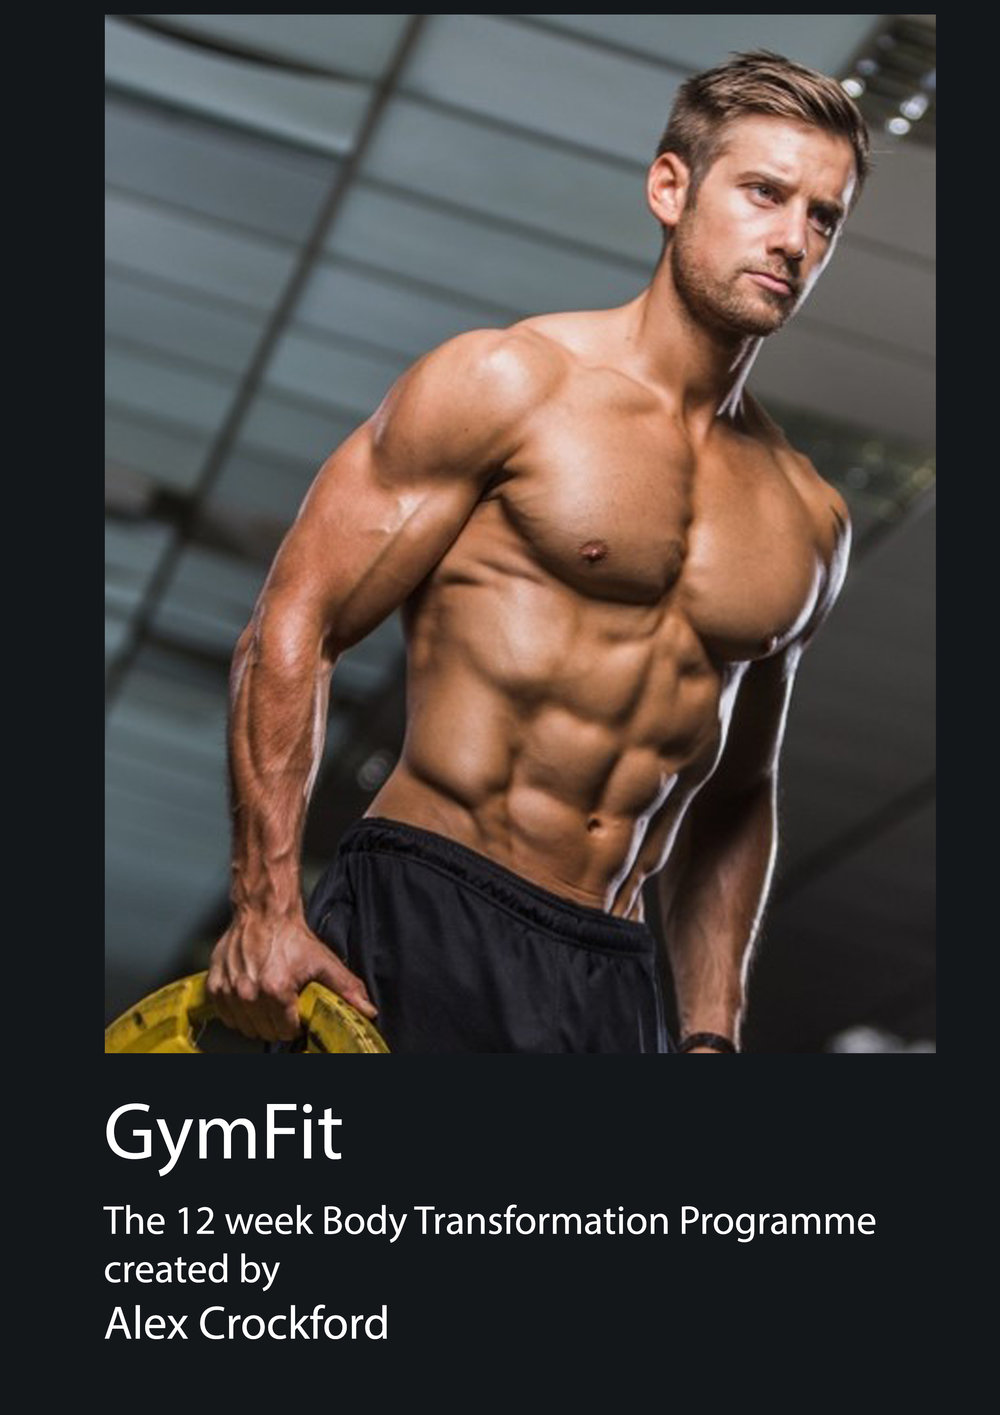 GymFit 1 - Trianing.jpg